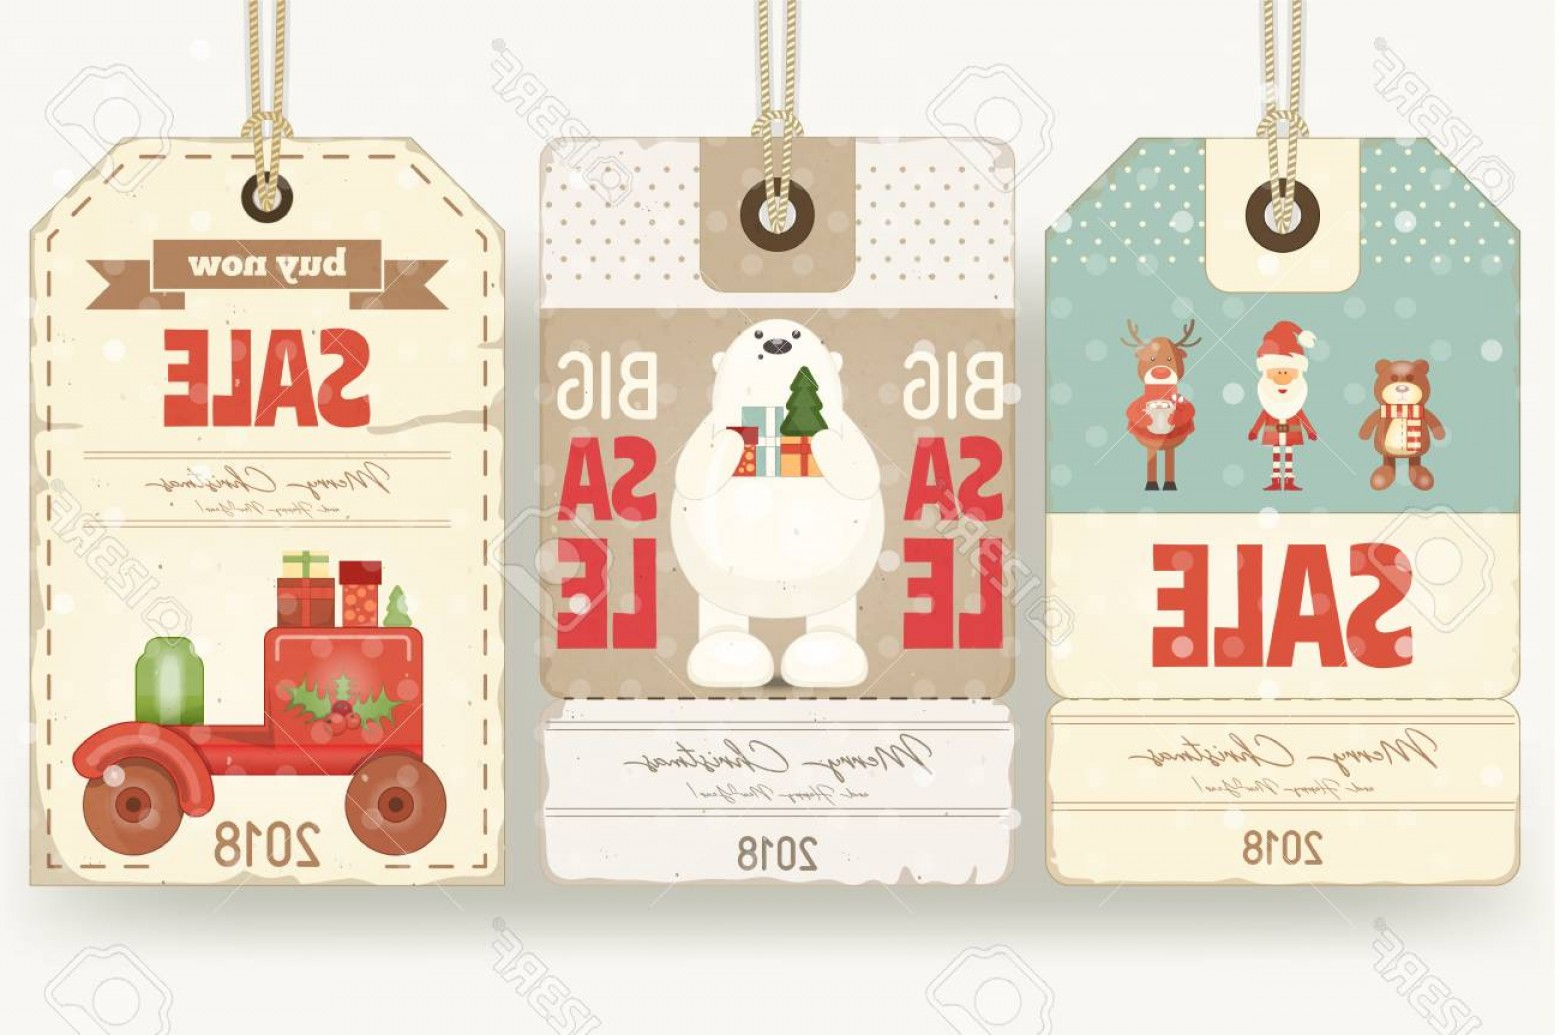 Vintage Xmas Sale Tag Vector: Photochristmas Sale Tags In Retro Style With Santa Claus And Xmas Characters Vector Illustration